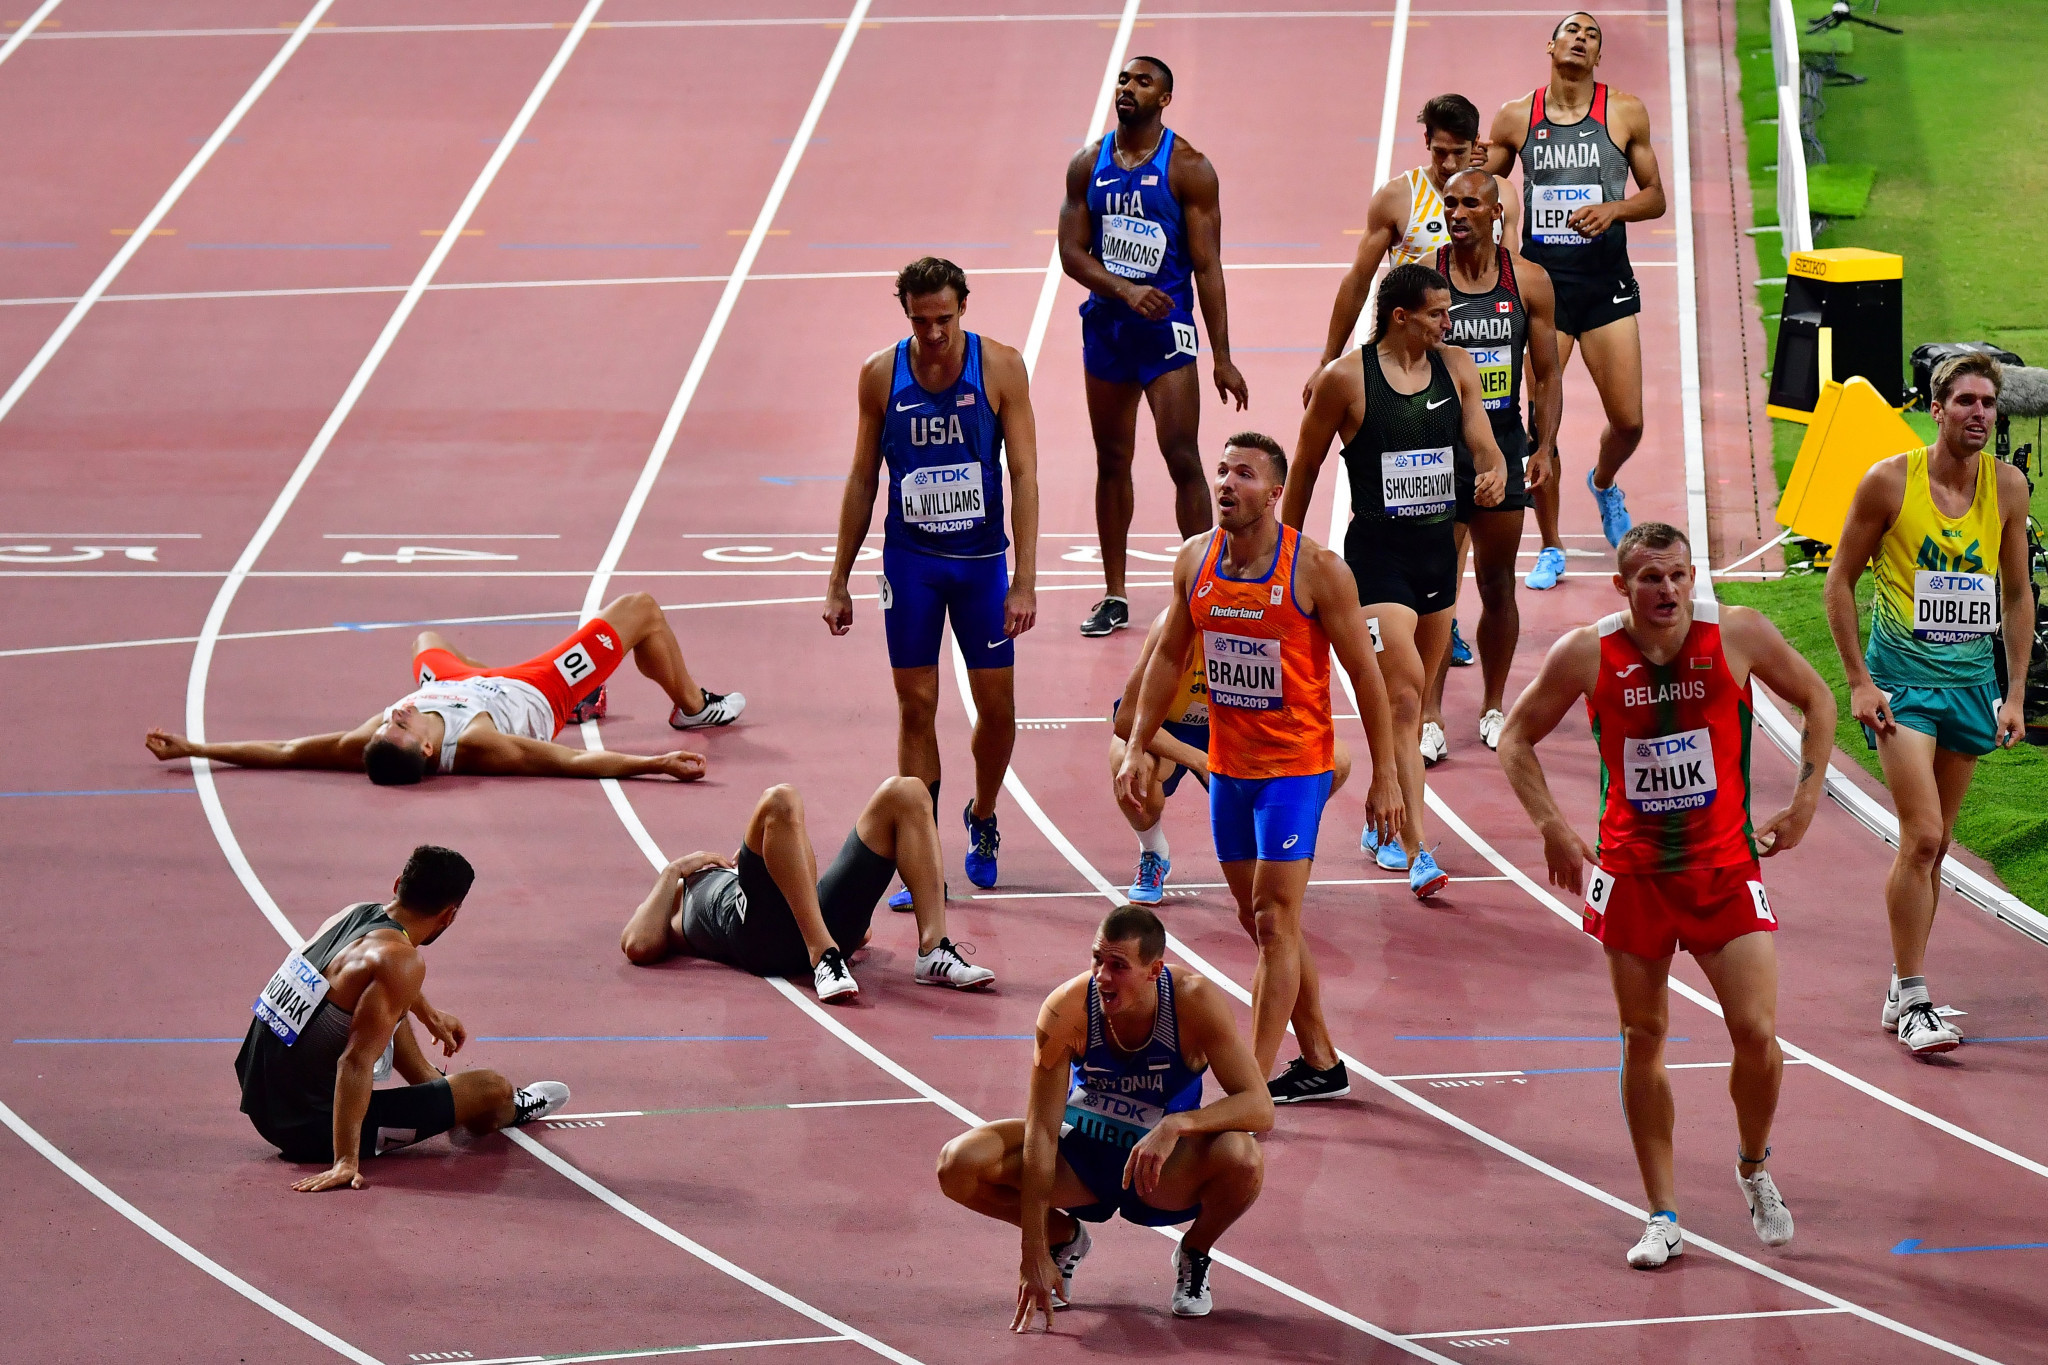 Competitors in the men's decathlon are glad it is over following the final of the 10 events, the 1500m, an event that finished in the early hours of the morning ©Getty Images